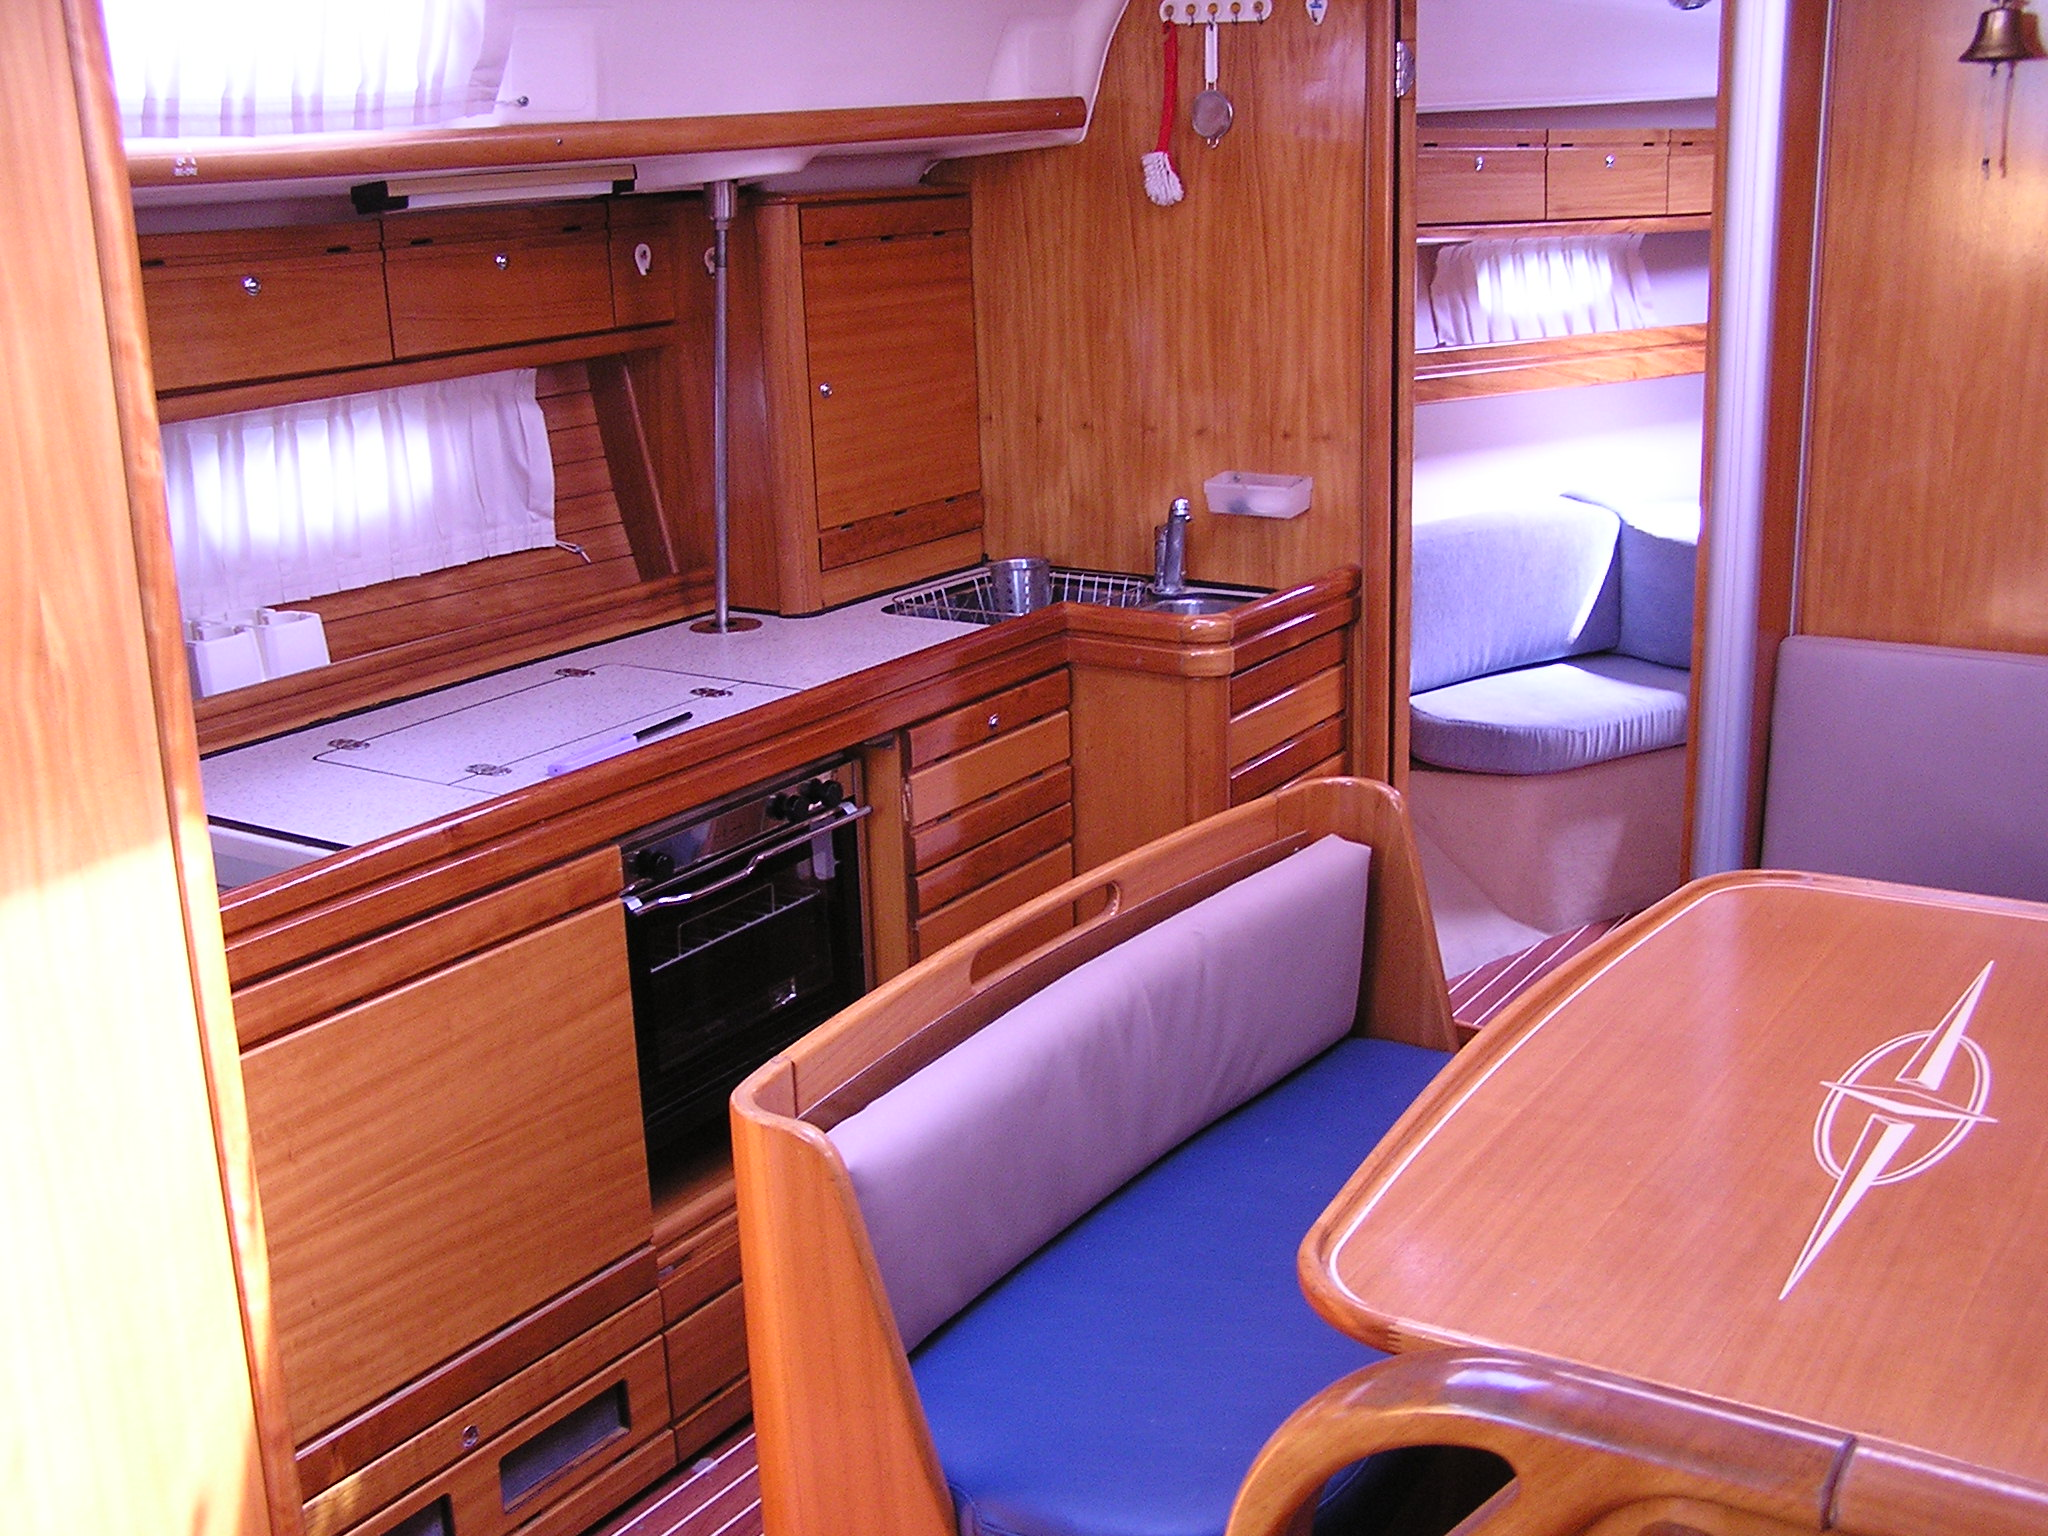 Bavaria 39 Cruiser (Julia) Interior image - 7